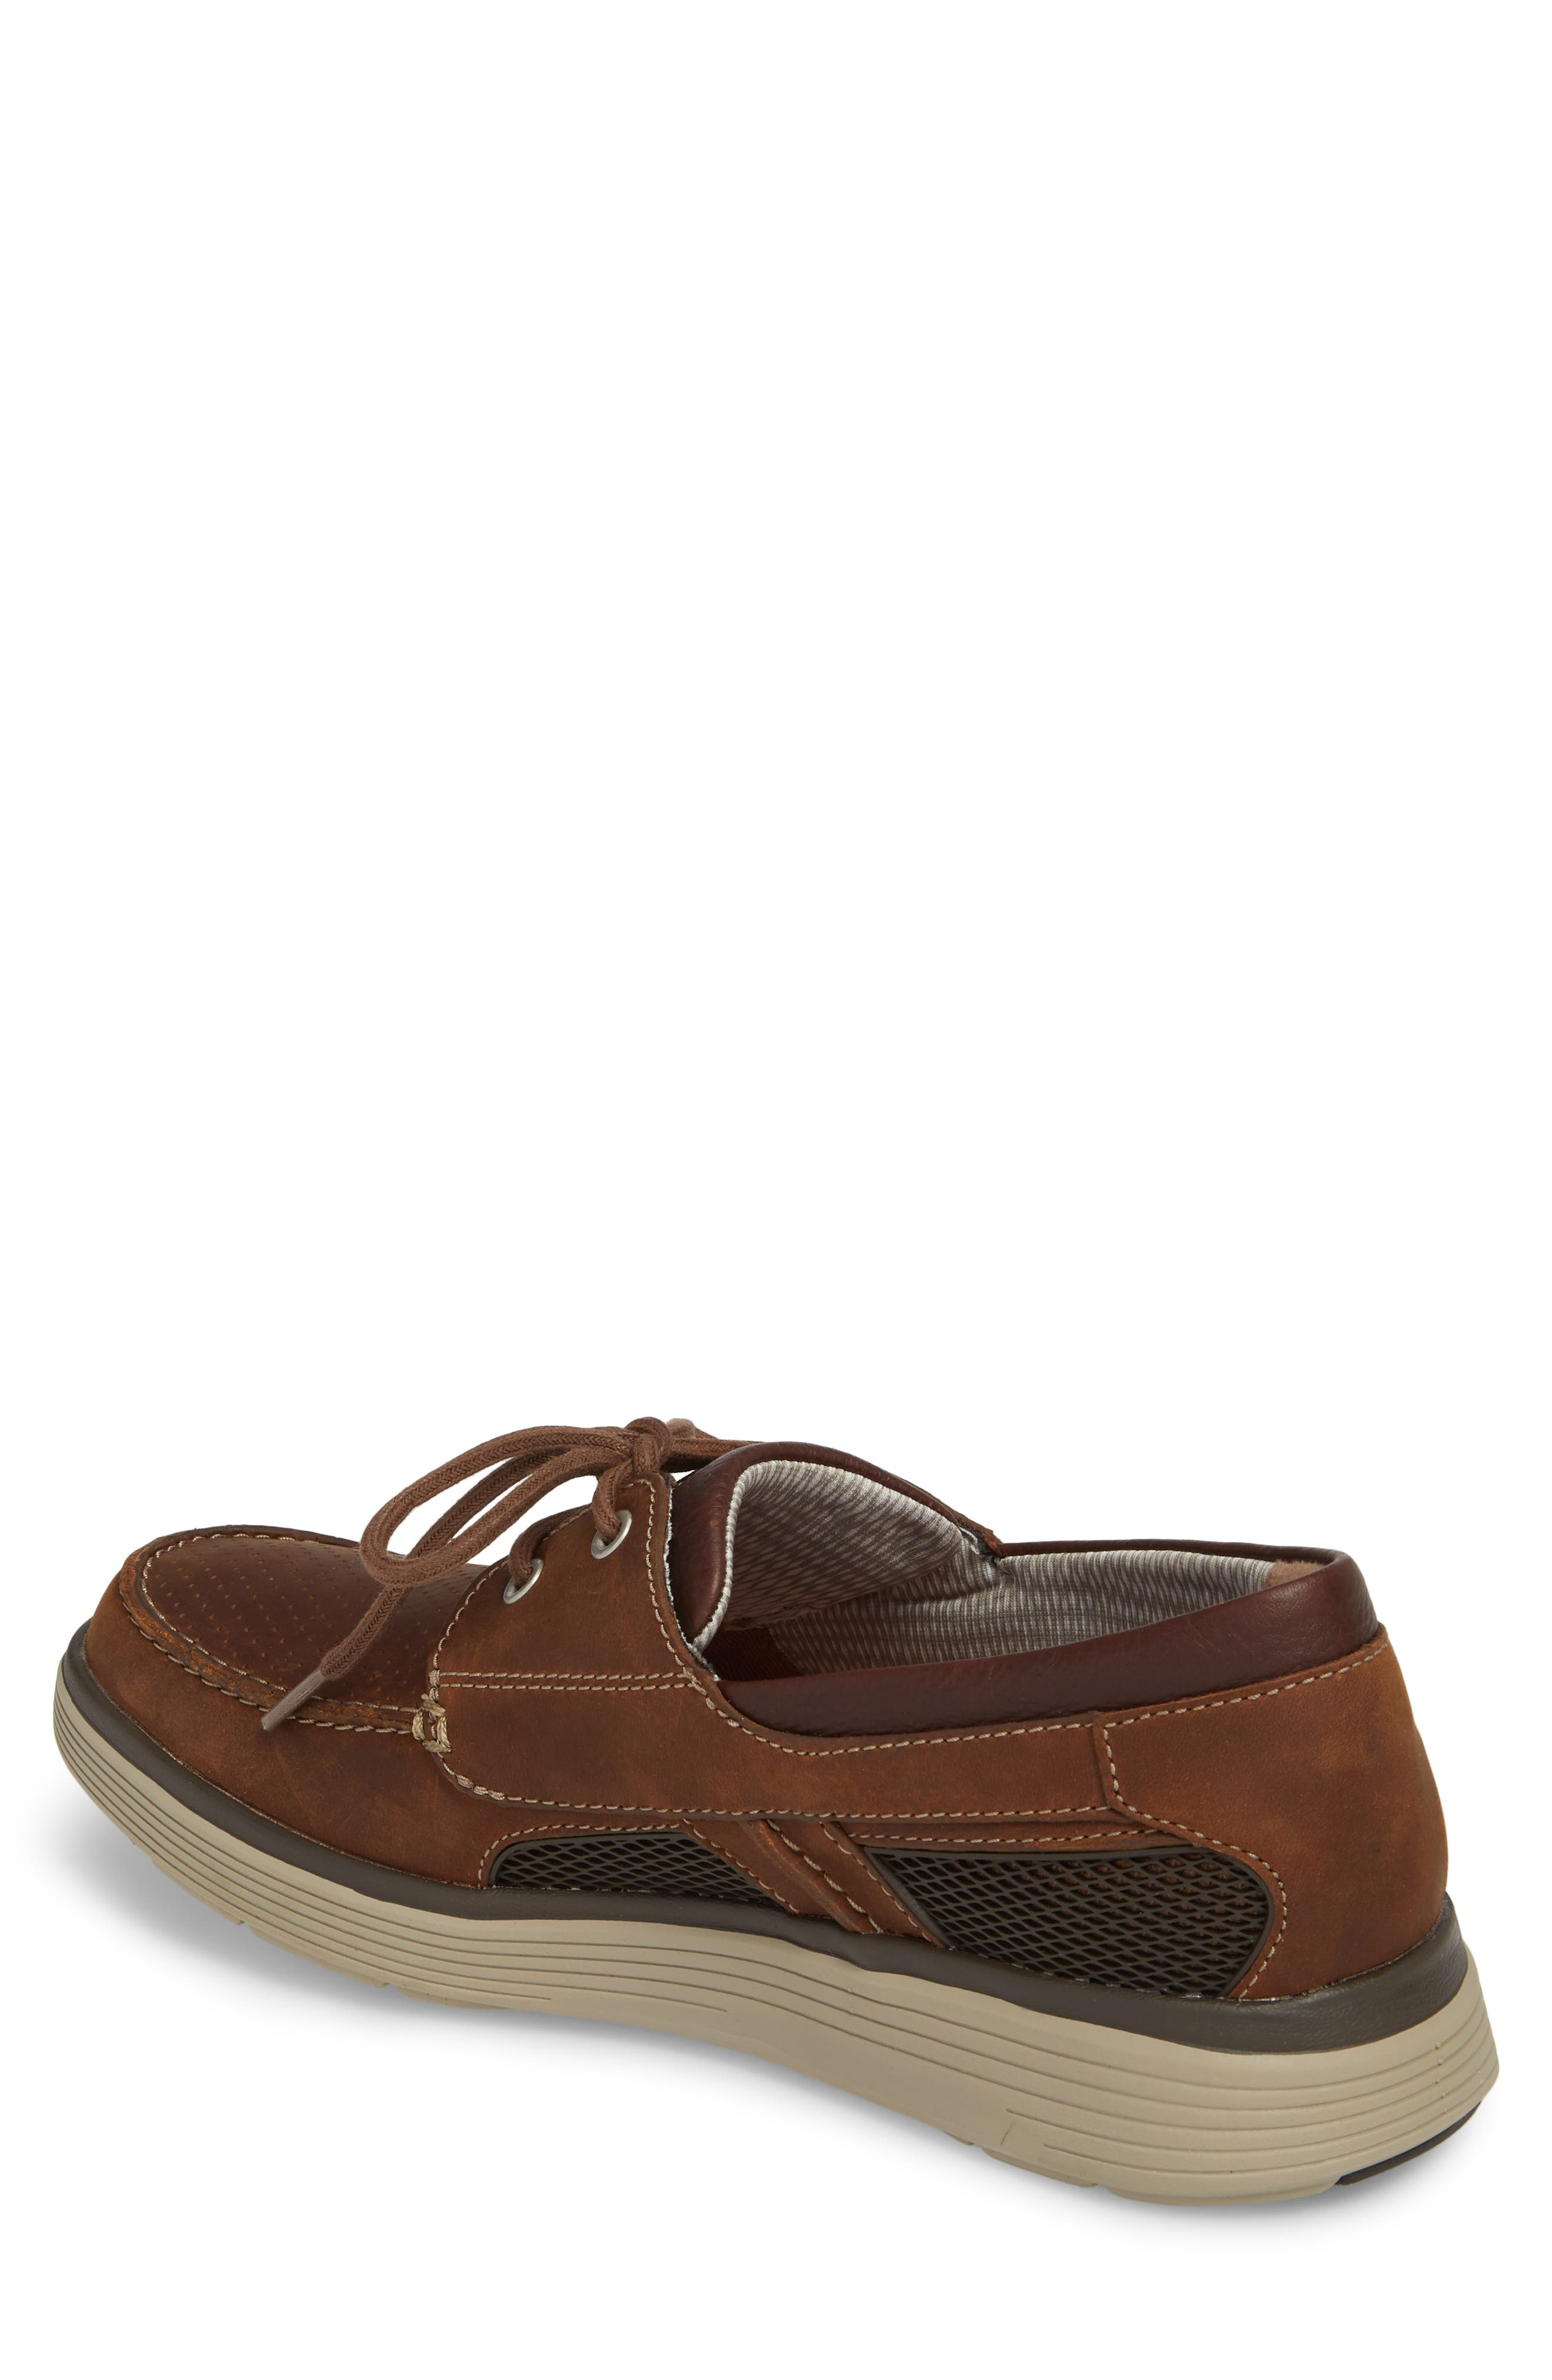 Clarks<sup>®</sup> Unabobe Step Boat Shoe,                             Alternate thumbnail 2, color,                             DARK TAN LEATHER